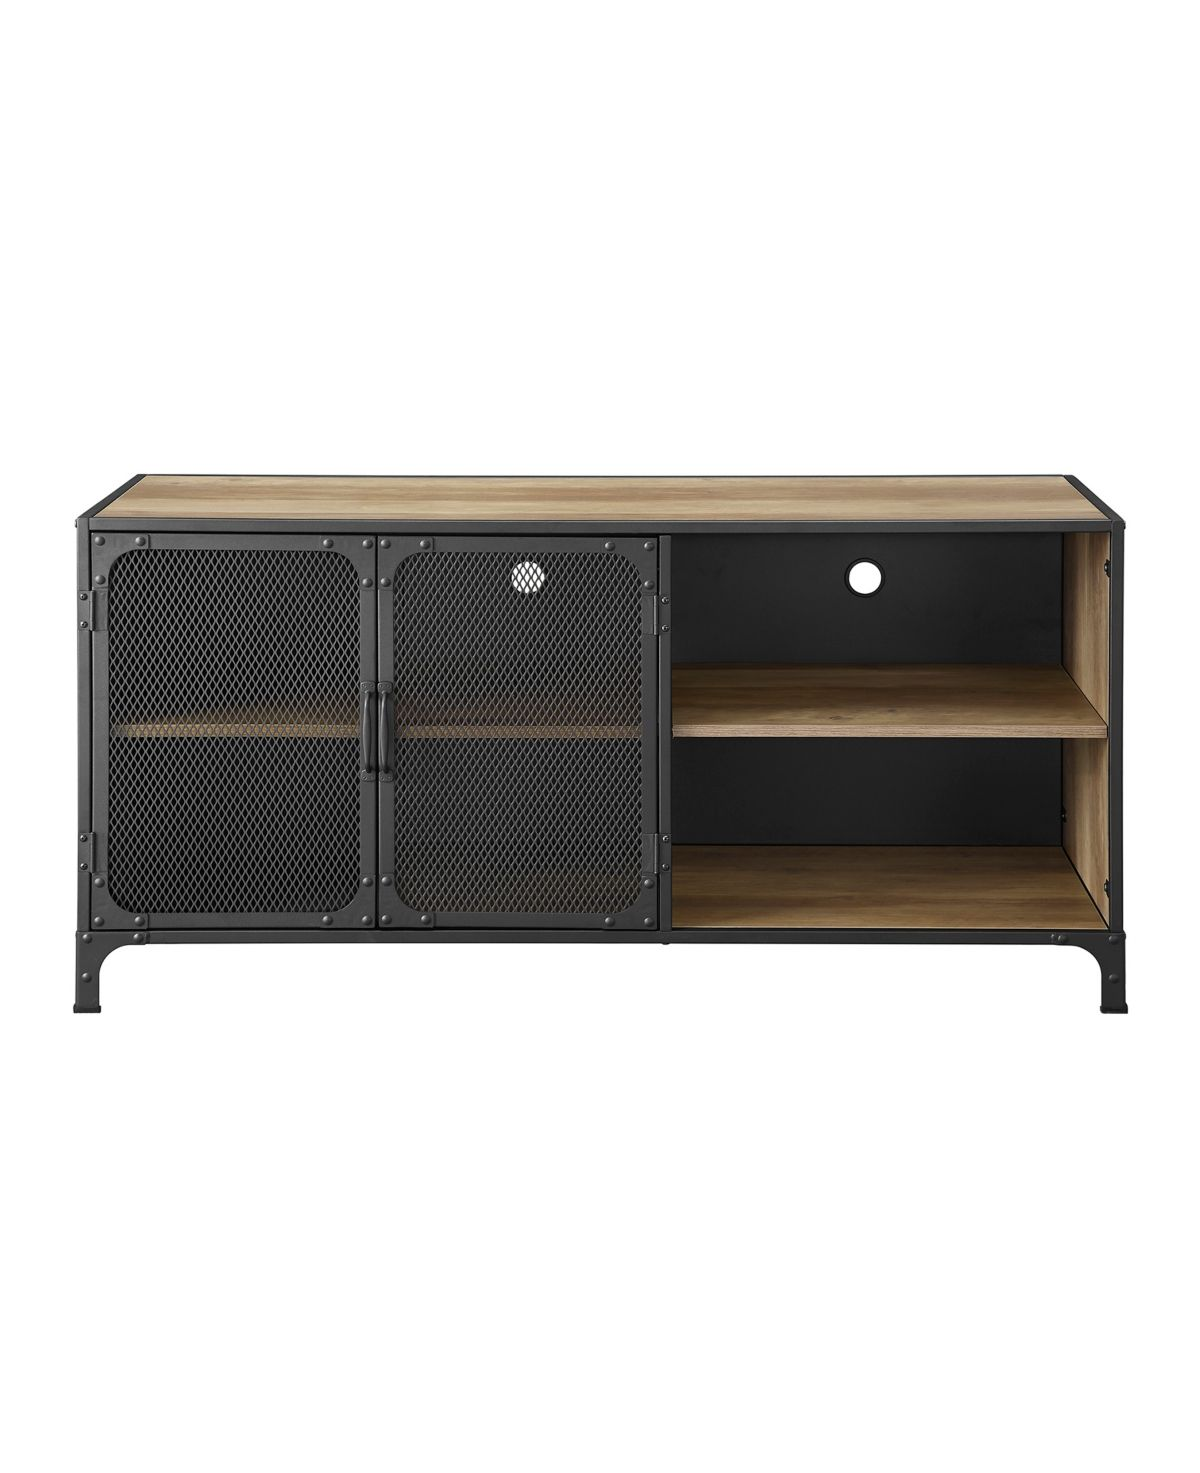 Walker Edison Industrial Metal And Wood Tv Stand Reviews